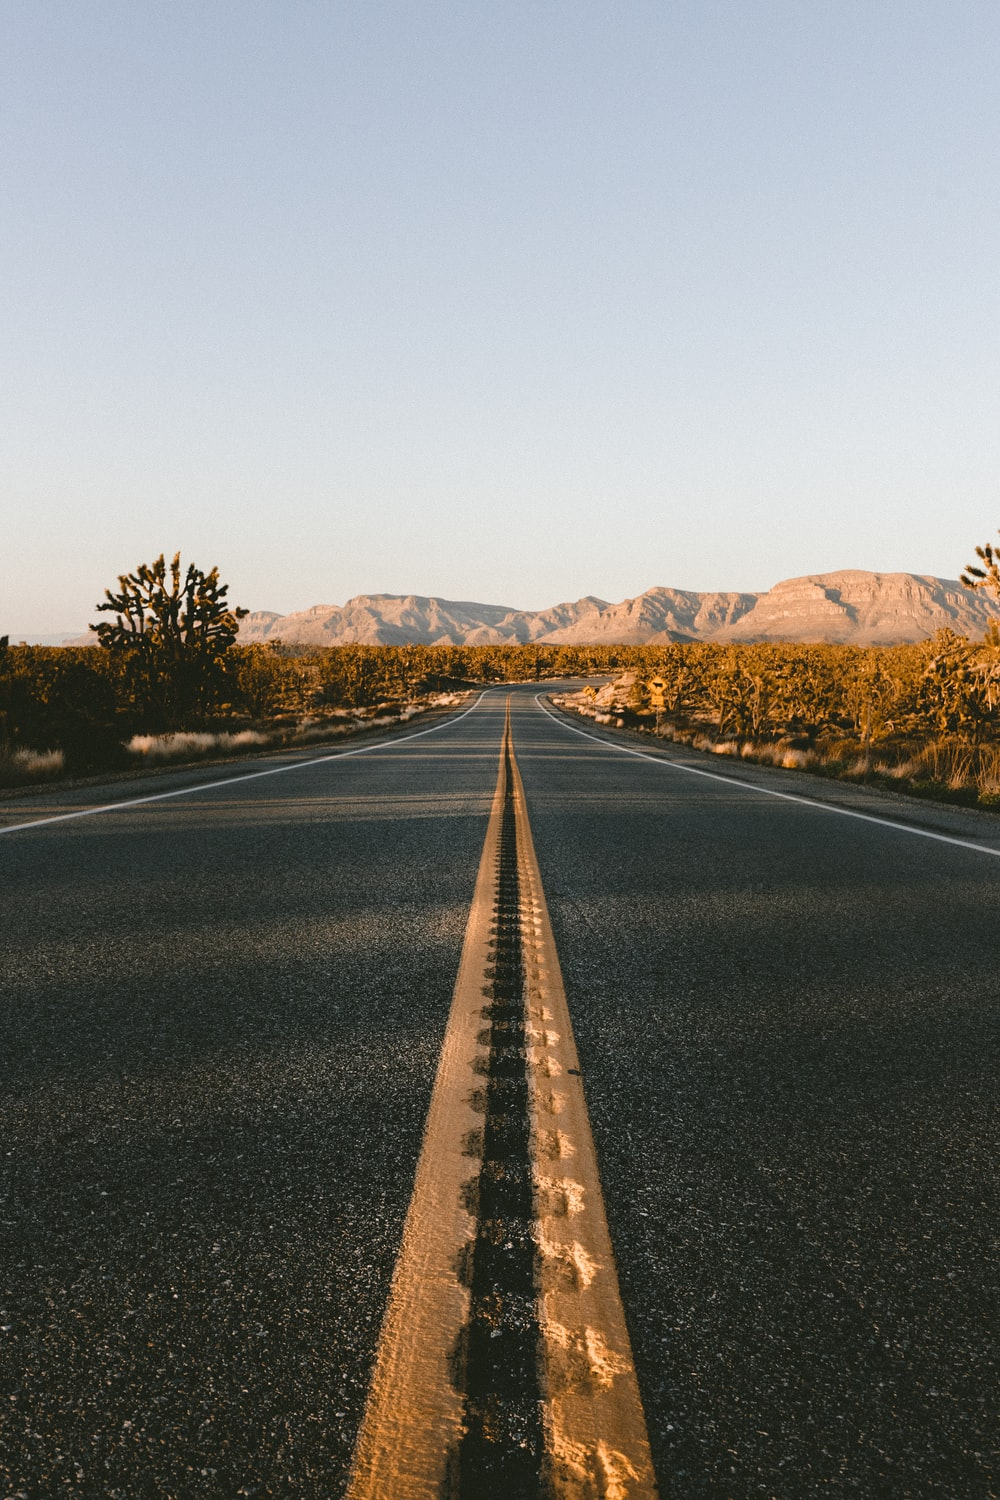 low angle view of asphalt road during daytime